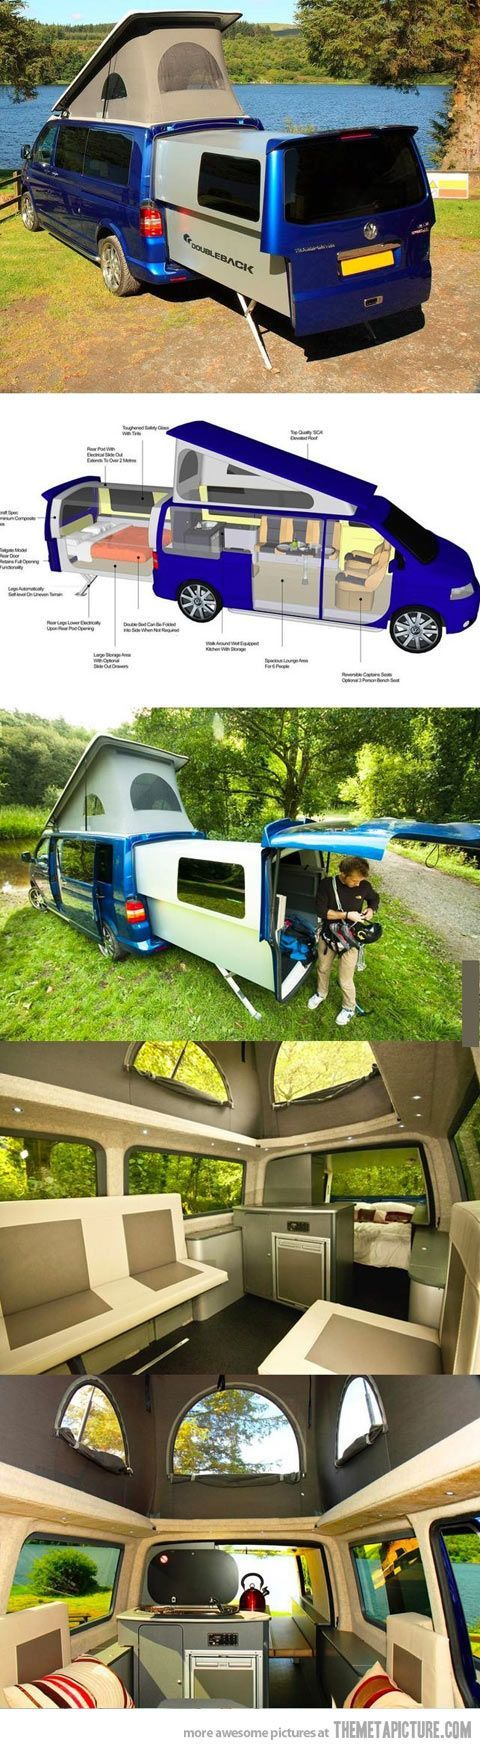 Now this is my kind of RV...don't like the HUGE ones for fear of the driving part but this would be like driving a 13 passenger van.....LOVE IT!!!